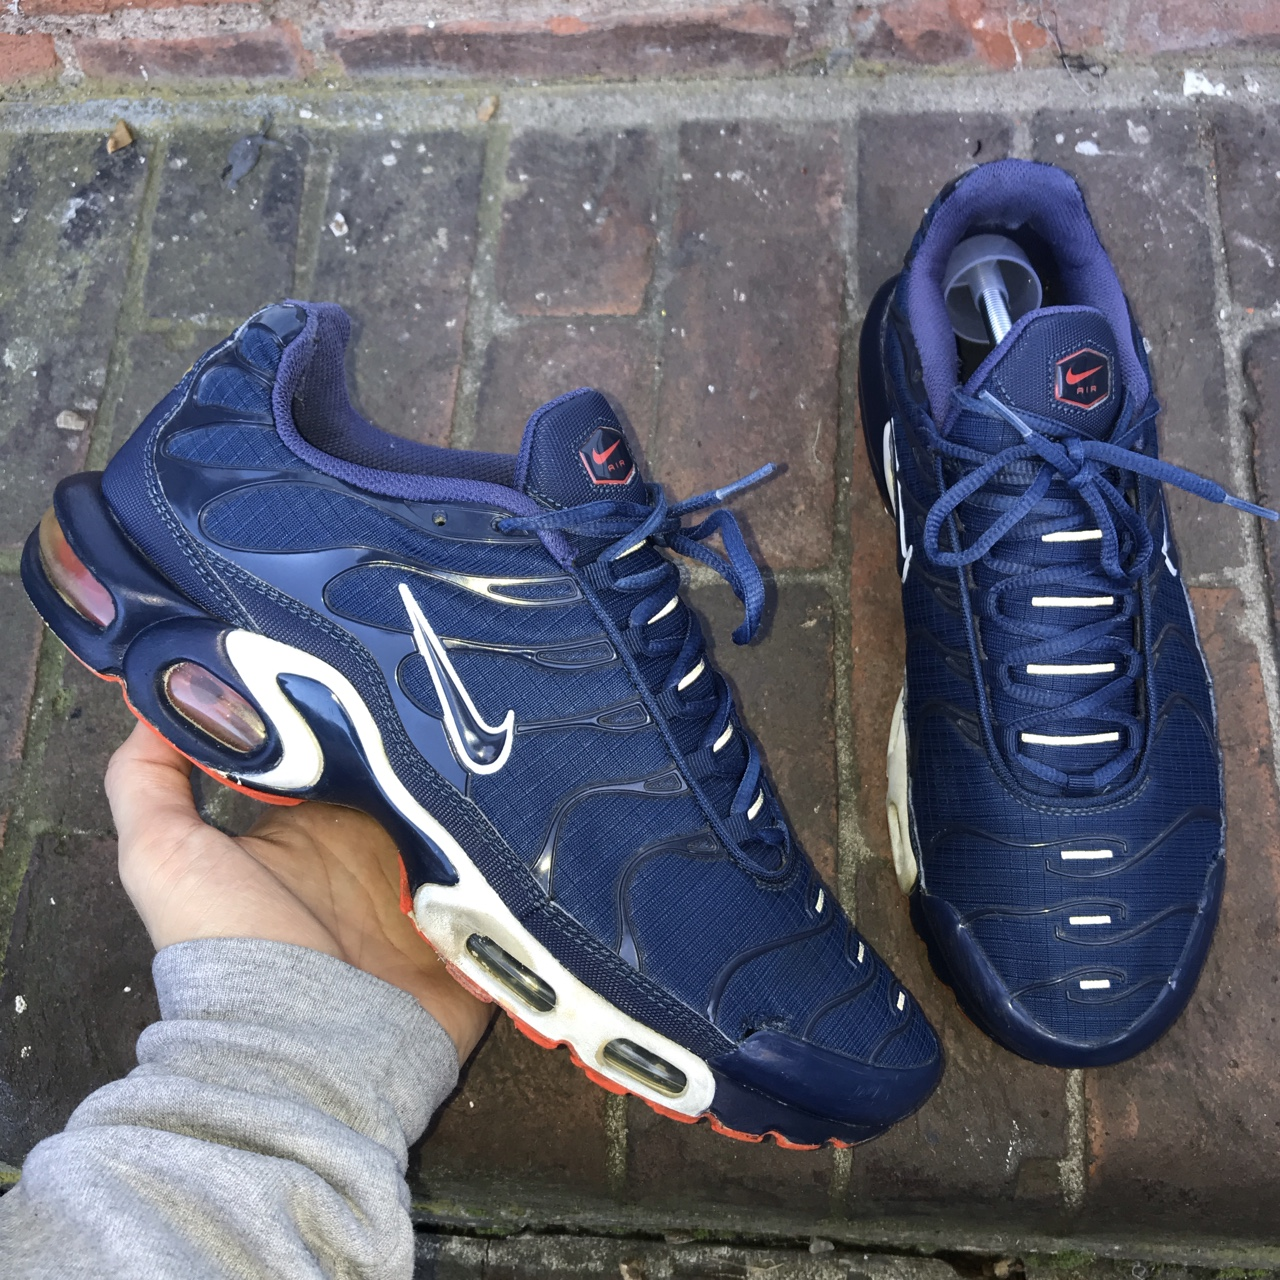 Nike Air Max Plus Tn Tuned Navy Blue White Red Depop